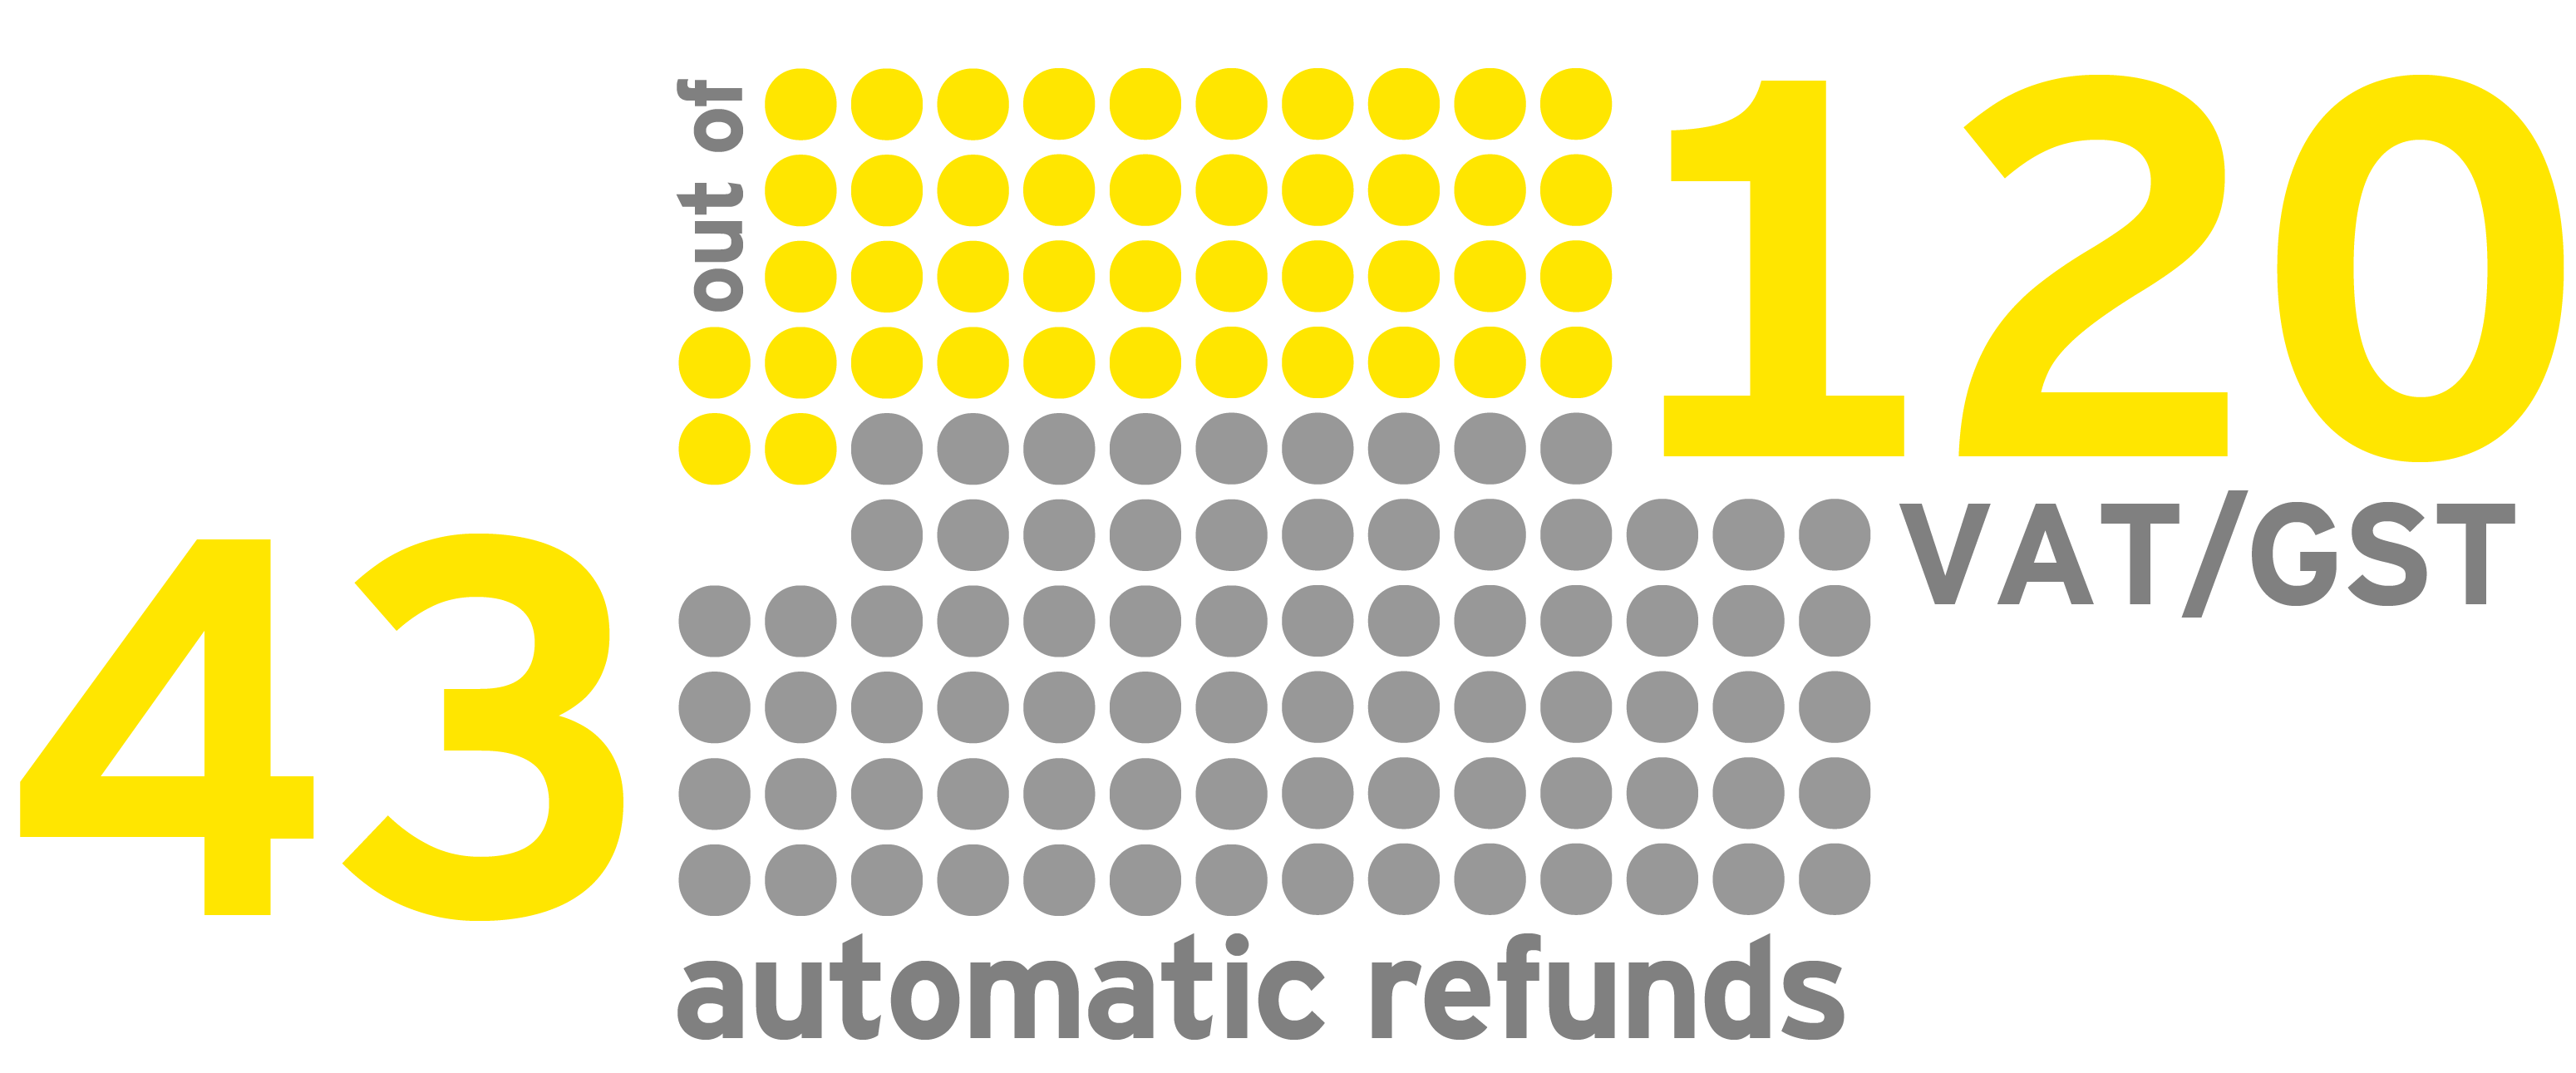 EY - Automatic refunds